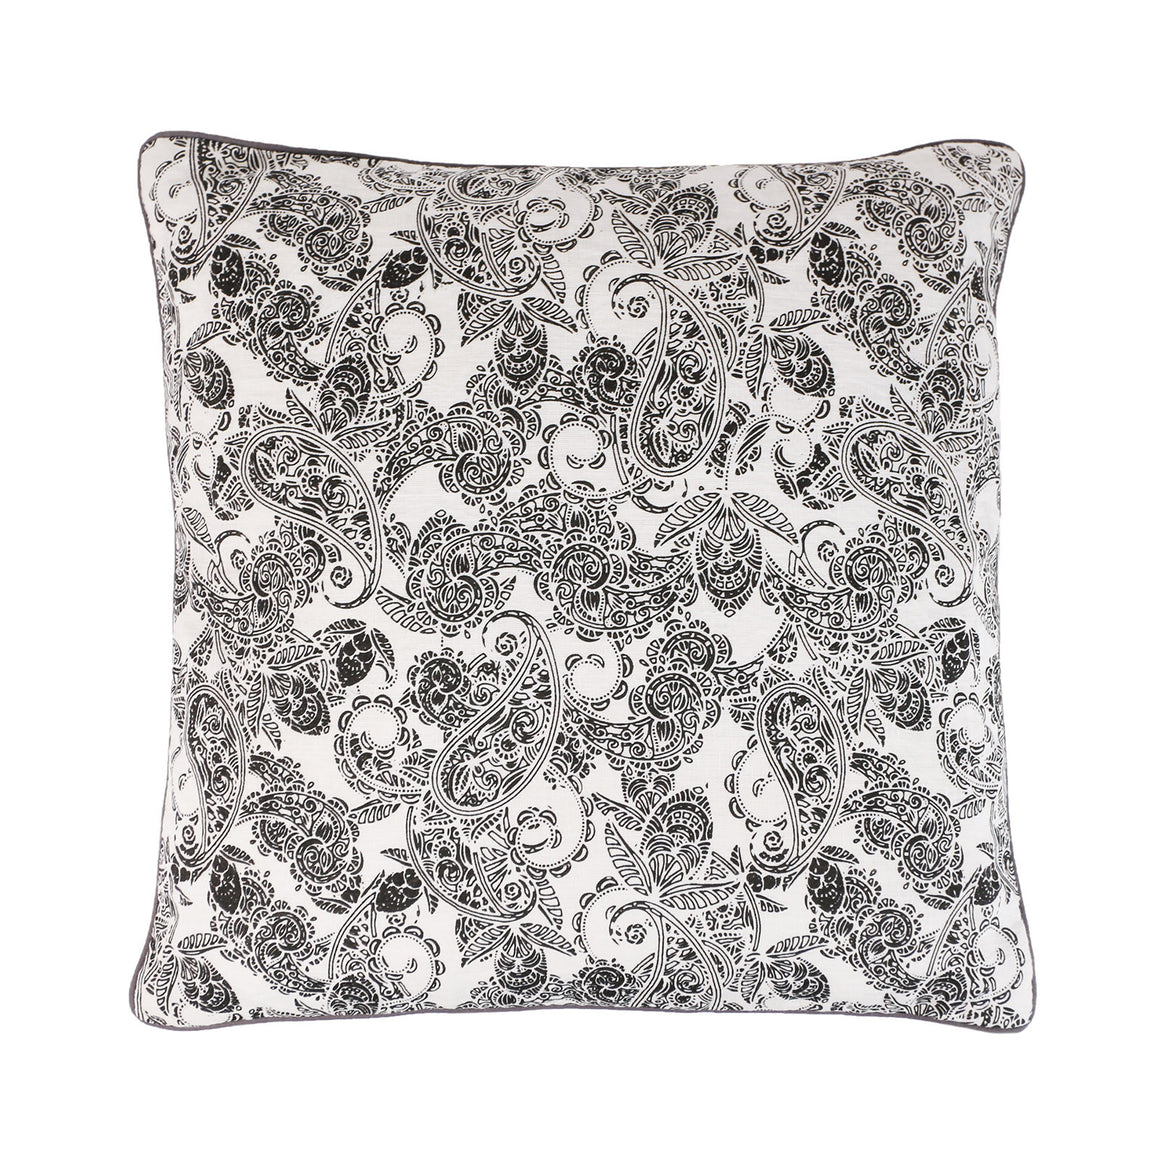 Buy one get one Free - Black and white Linen Paisley